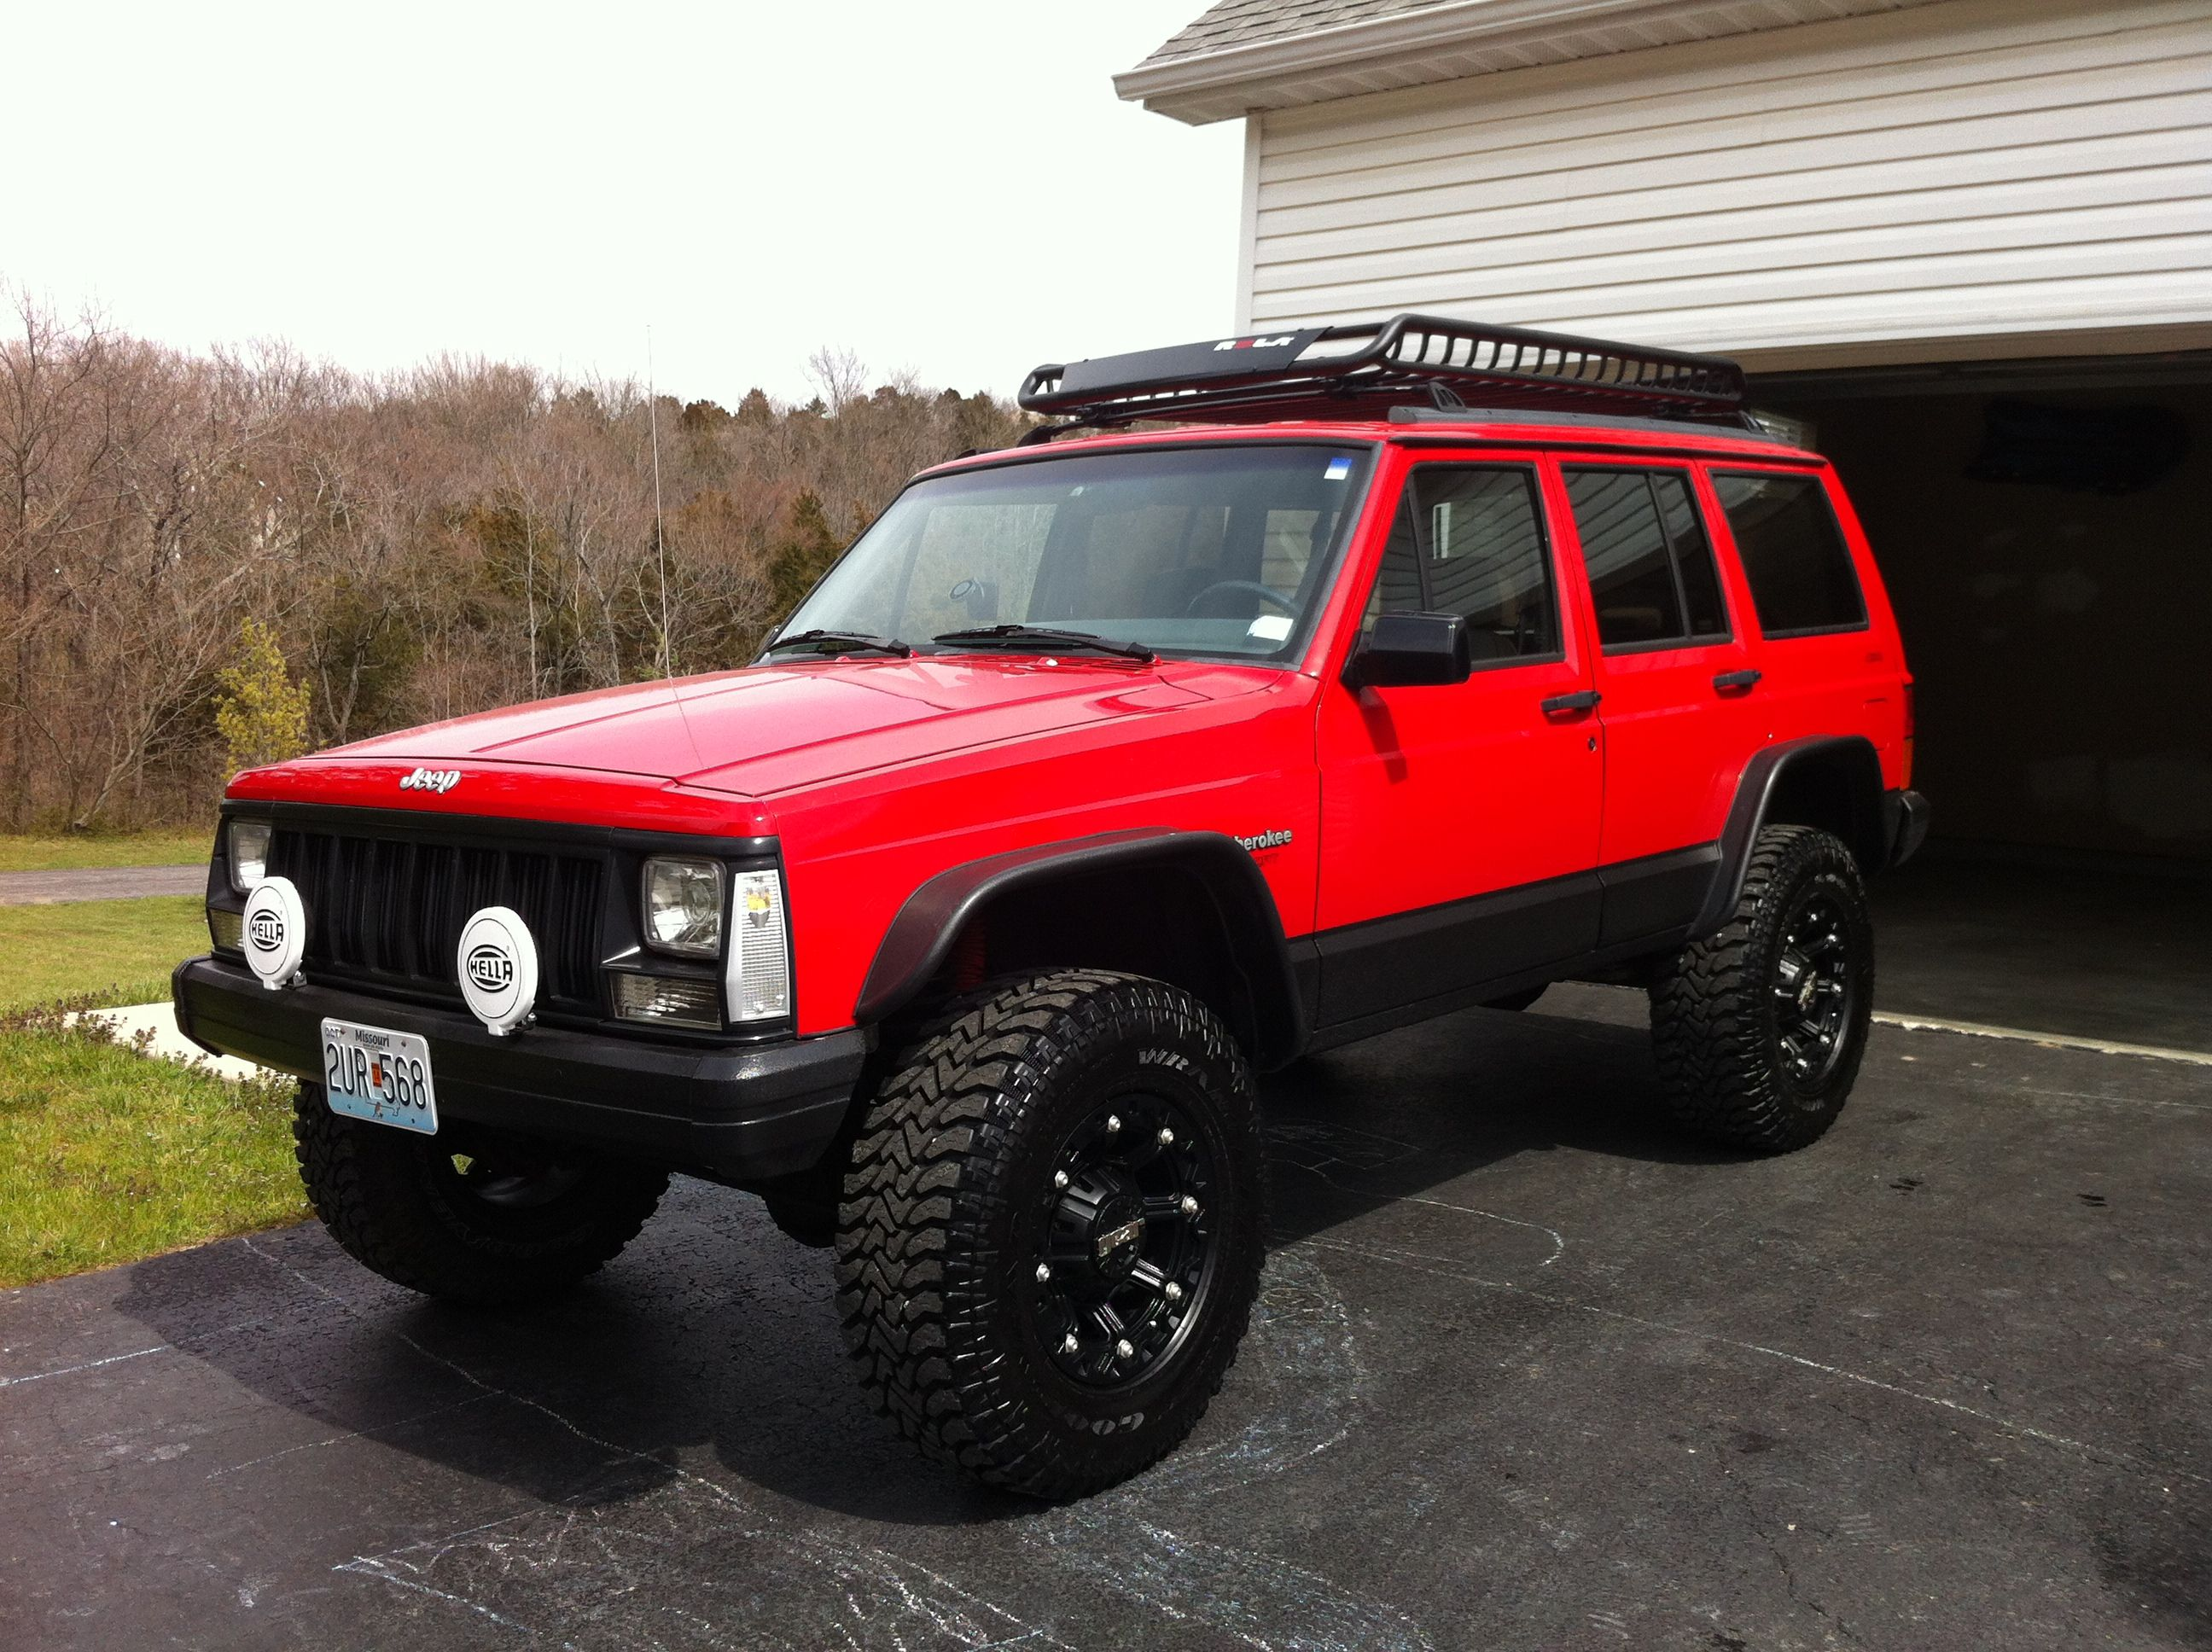 Exact Jeep I M Getting 1993 Cherokee In Red Possible Present To Myself At Platinum Leader Rank Autos Camionetas Cherokee